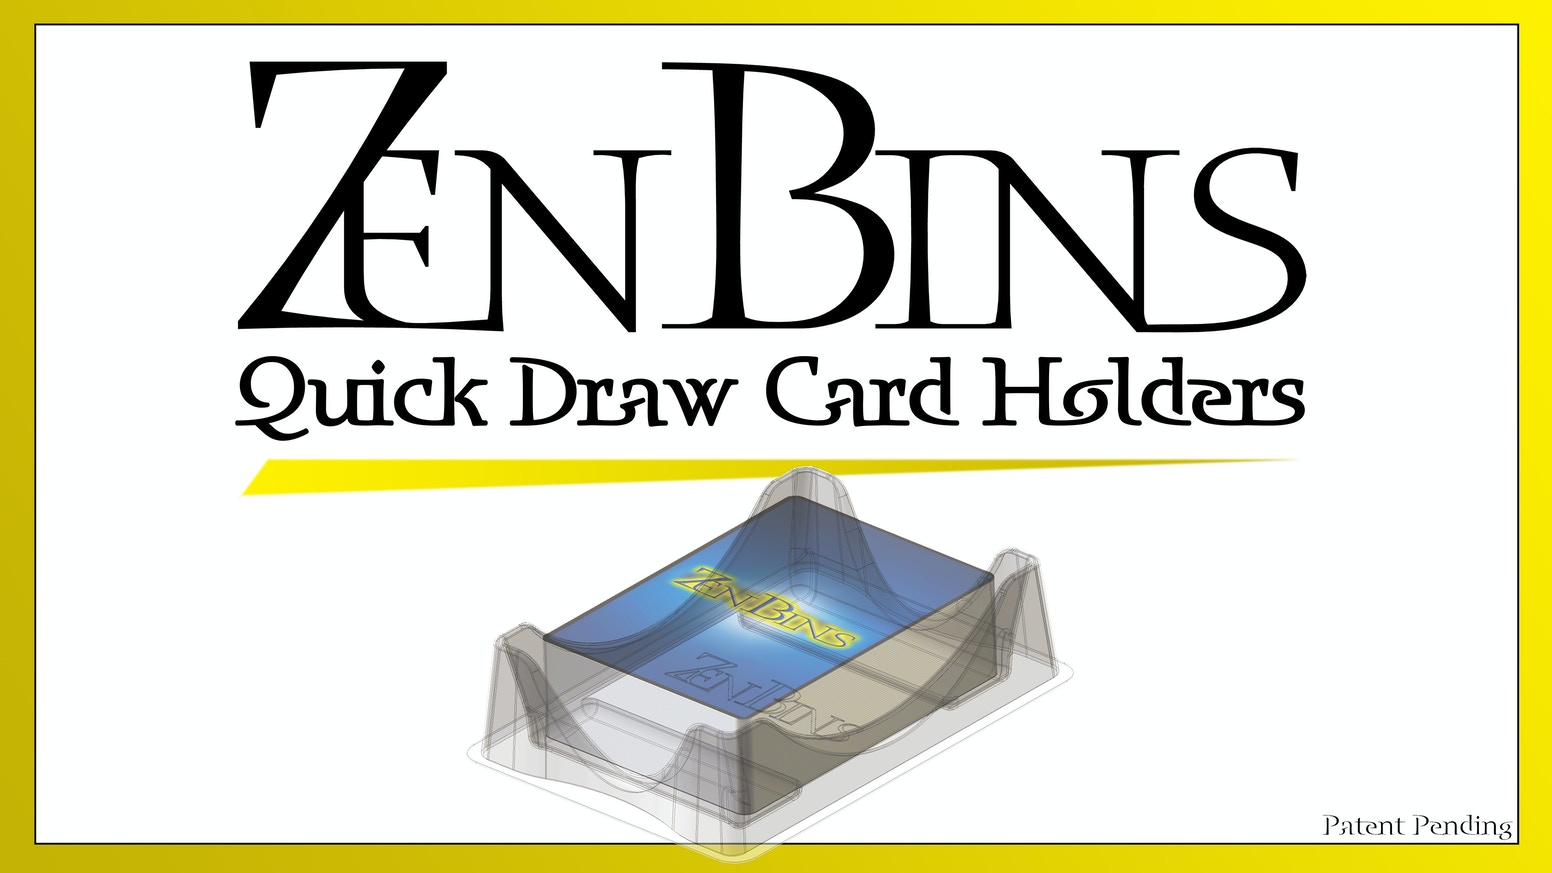 Zen Bins Quick Draw Card Holders is the top crowdfunding project launched today. Zen Bins Quick Draw Card Holders raised over $25462 from 643 backers. Other top projects include TRITON CARBON FIBER GLOW RINGS,